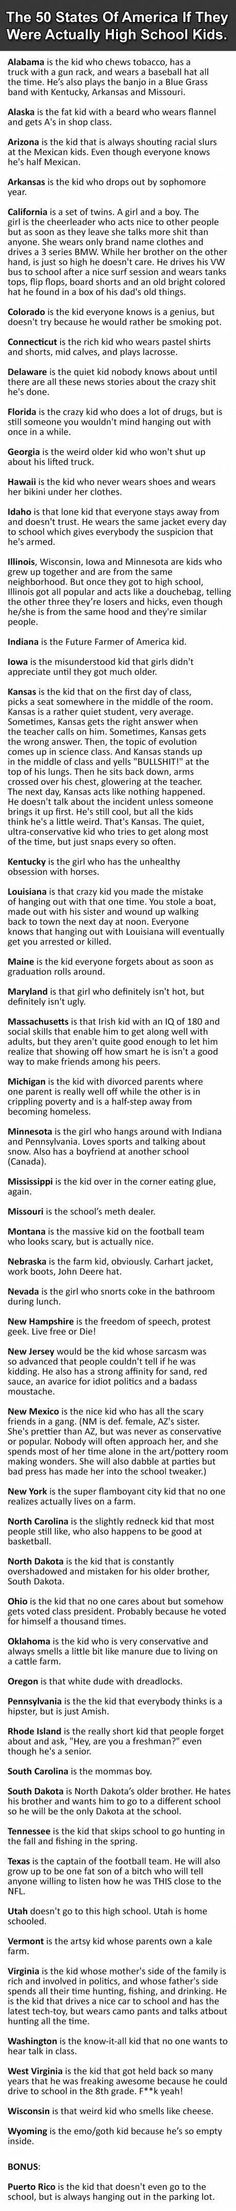 The 50 States of America if they were actually High School kids